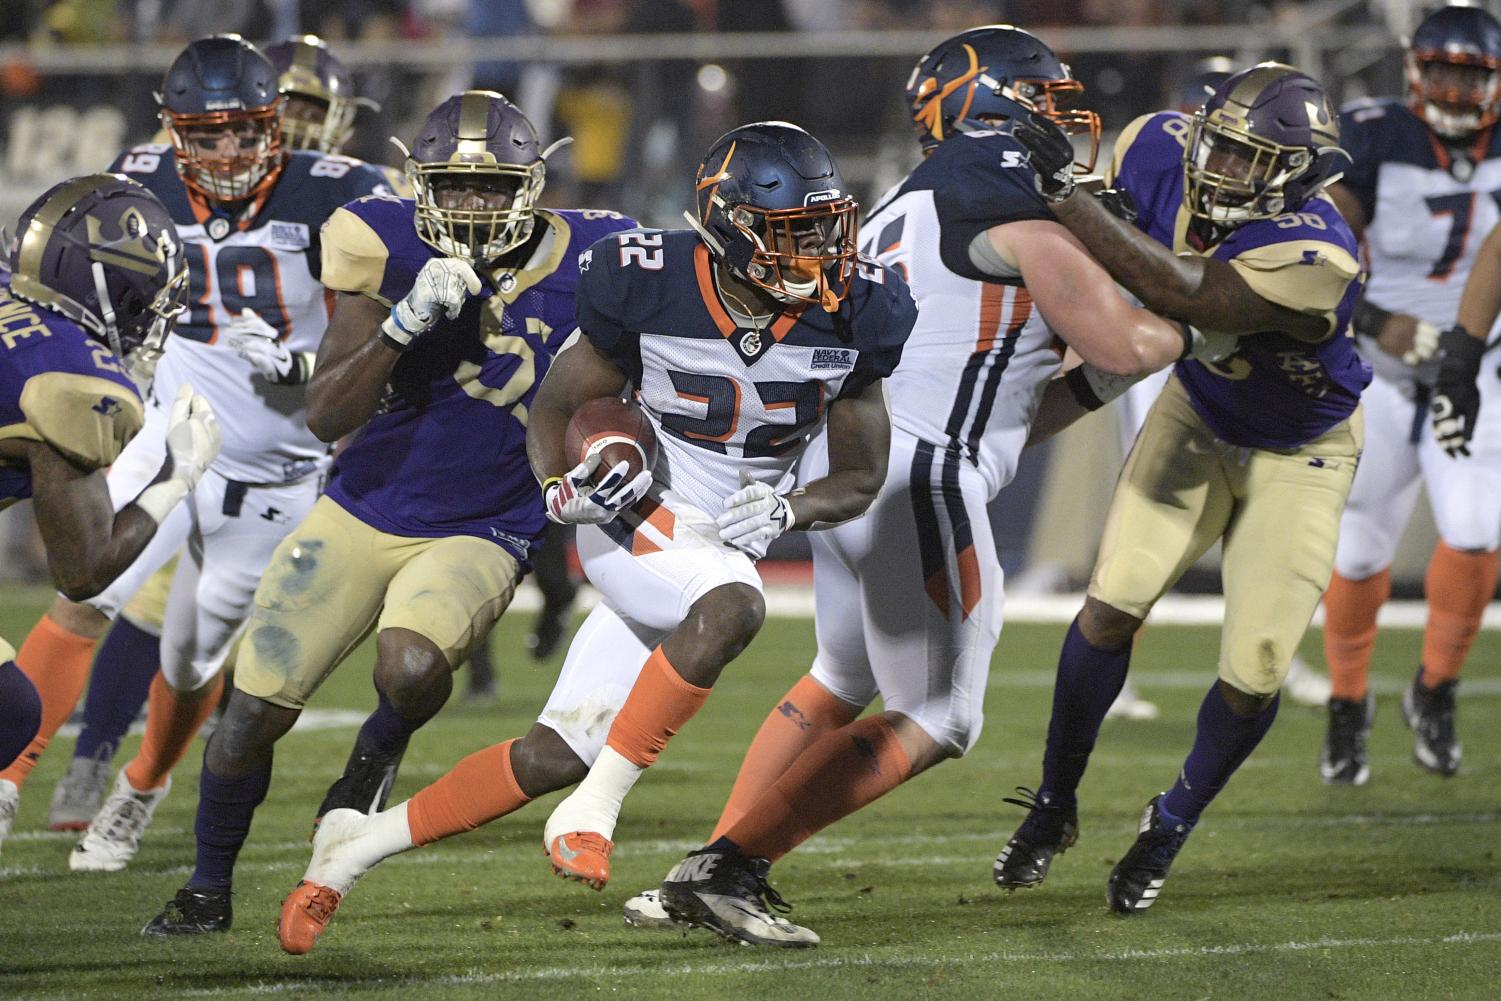 The AAF kicked-off their league debut on Feb. 9